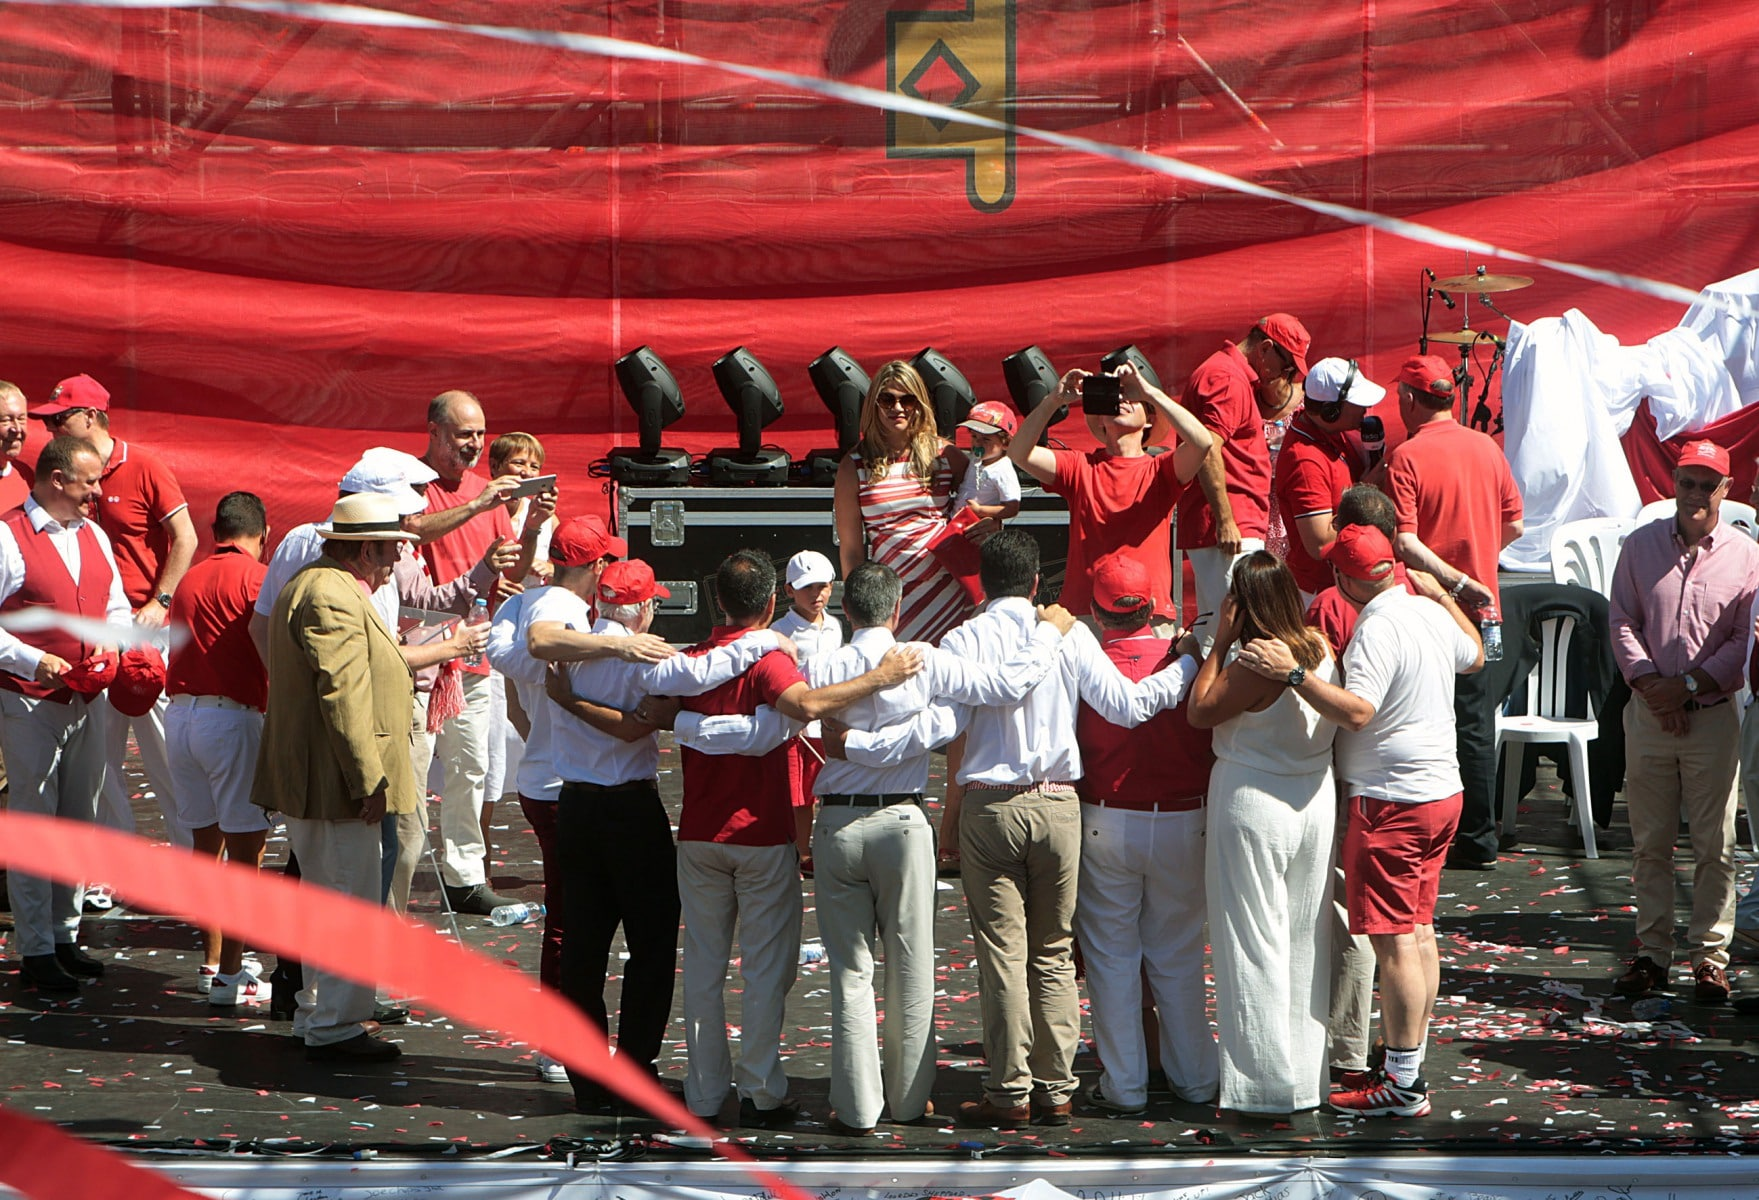 160910-national-day-gibraltar-2016-76_29495004612_o